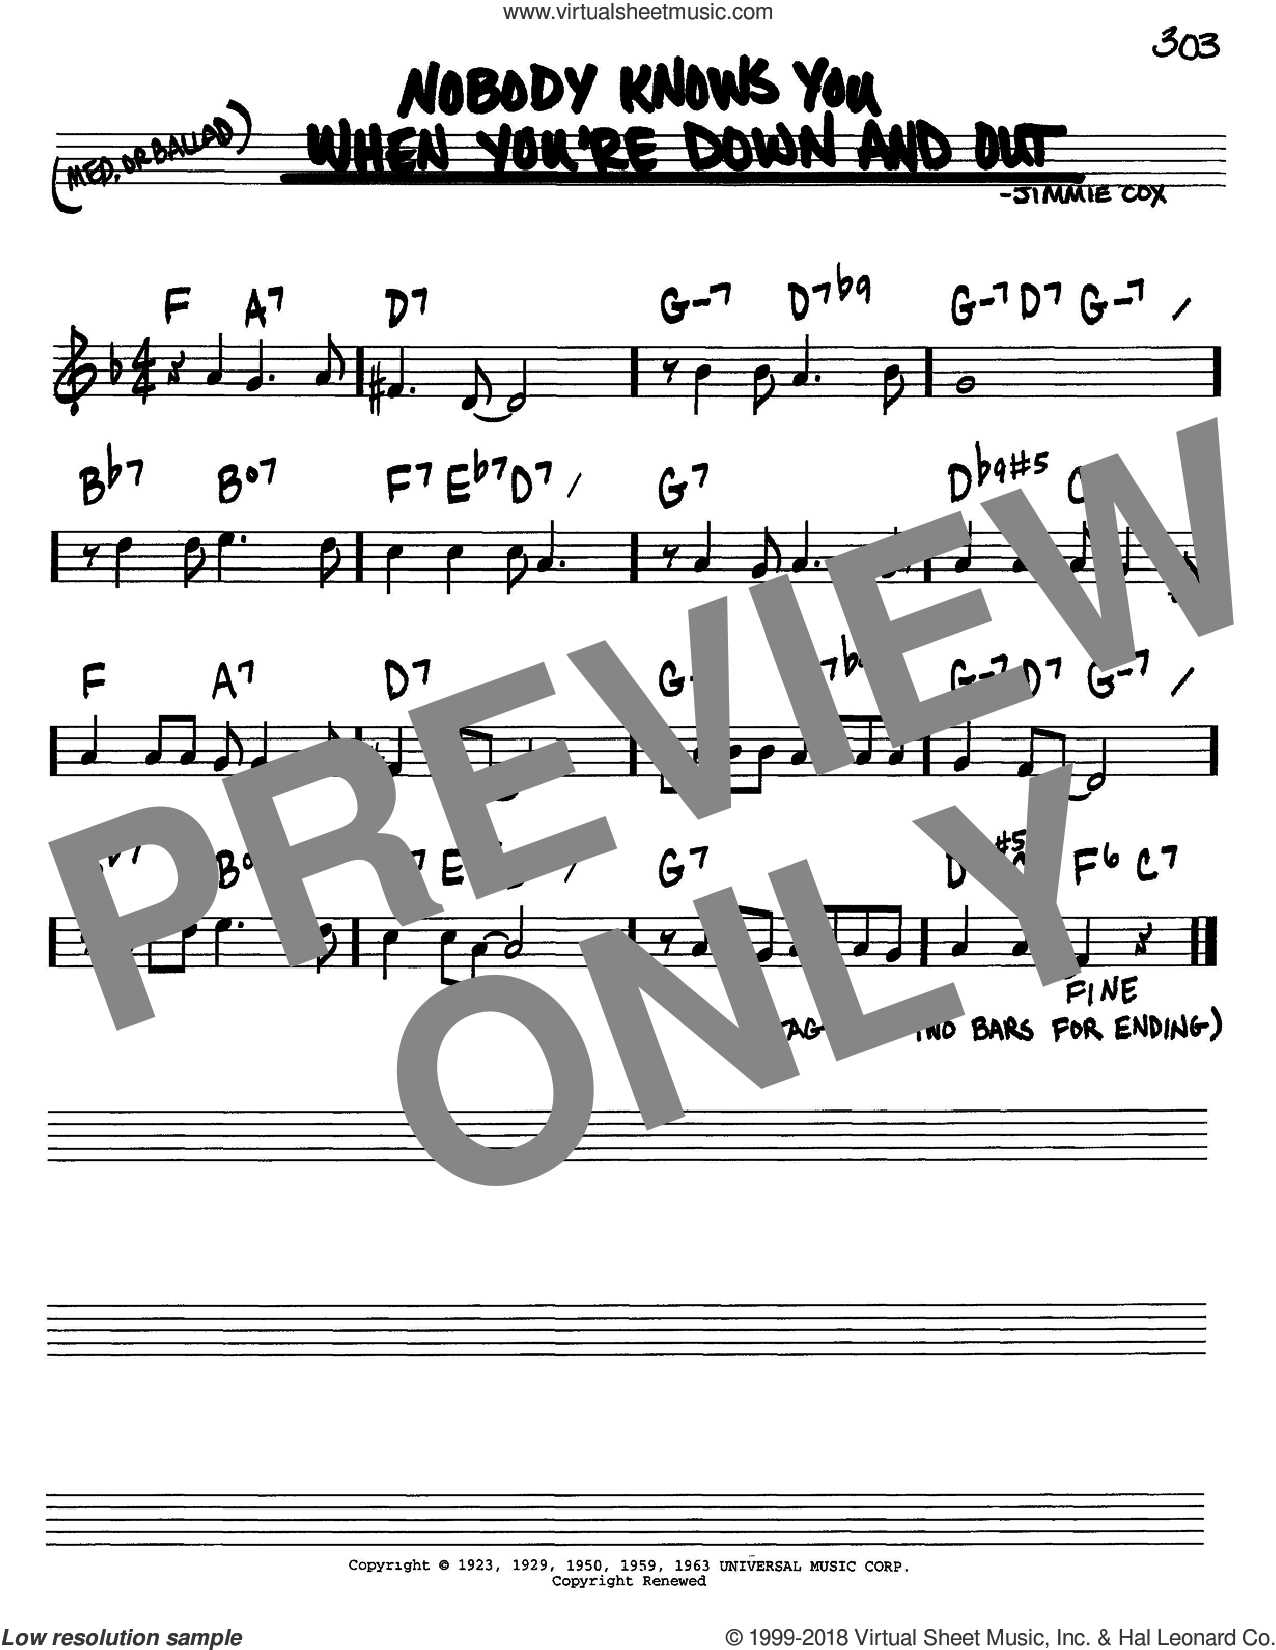 Nobody Knows You When You're Down And Out sheet music for voice and other instruments (C) by Jimmie Cox. Score Image Preview.